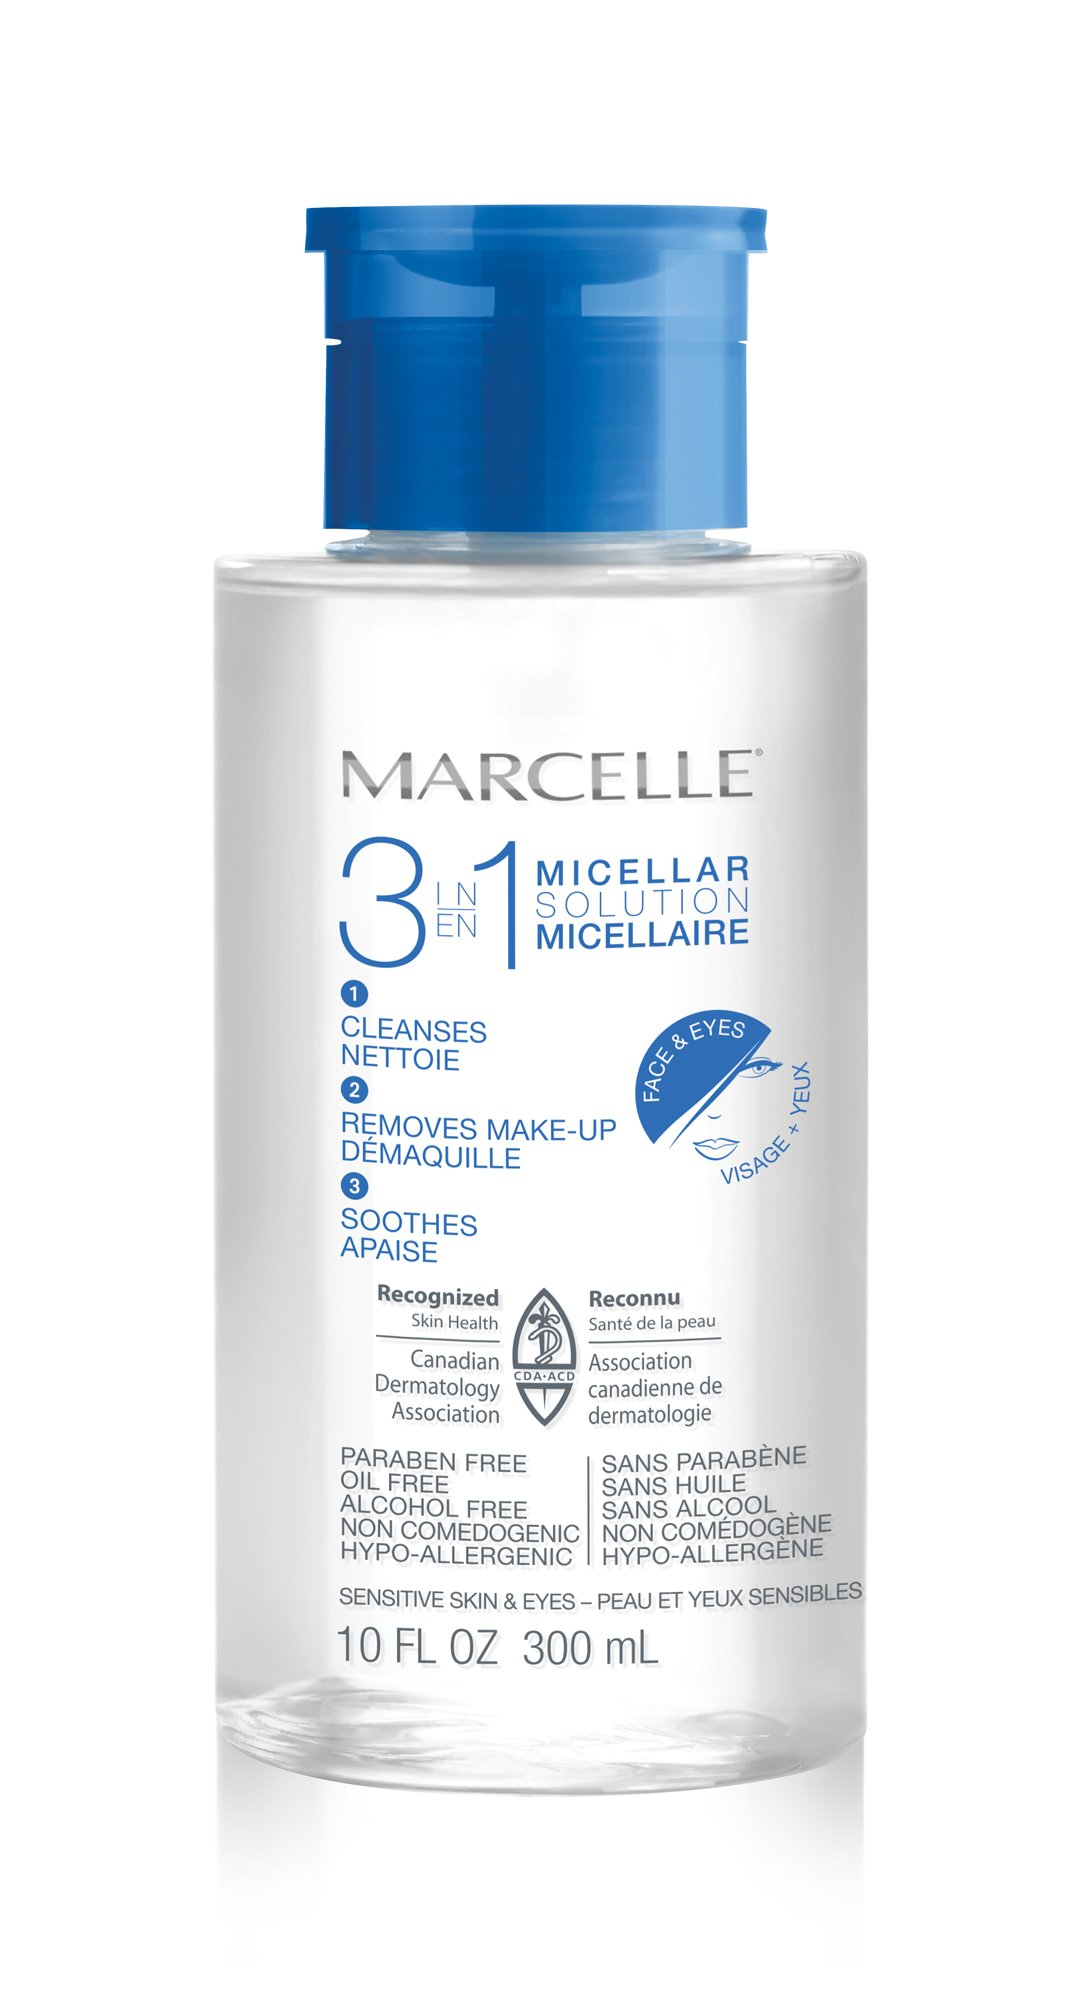 Marcelle 3-in-1 Micellar Solution, 10 fl oz product image